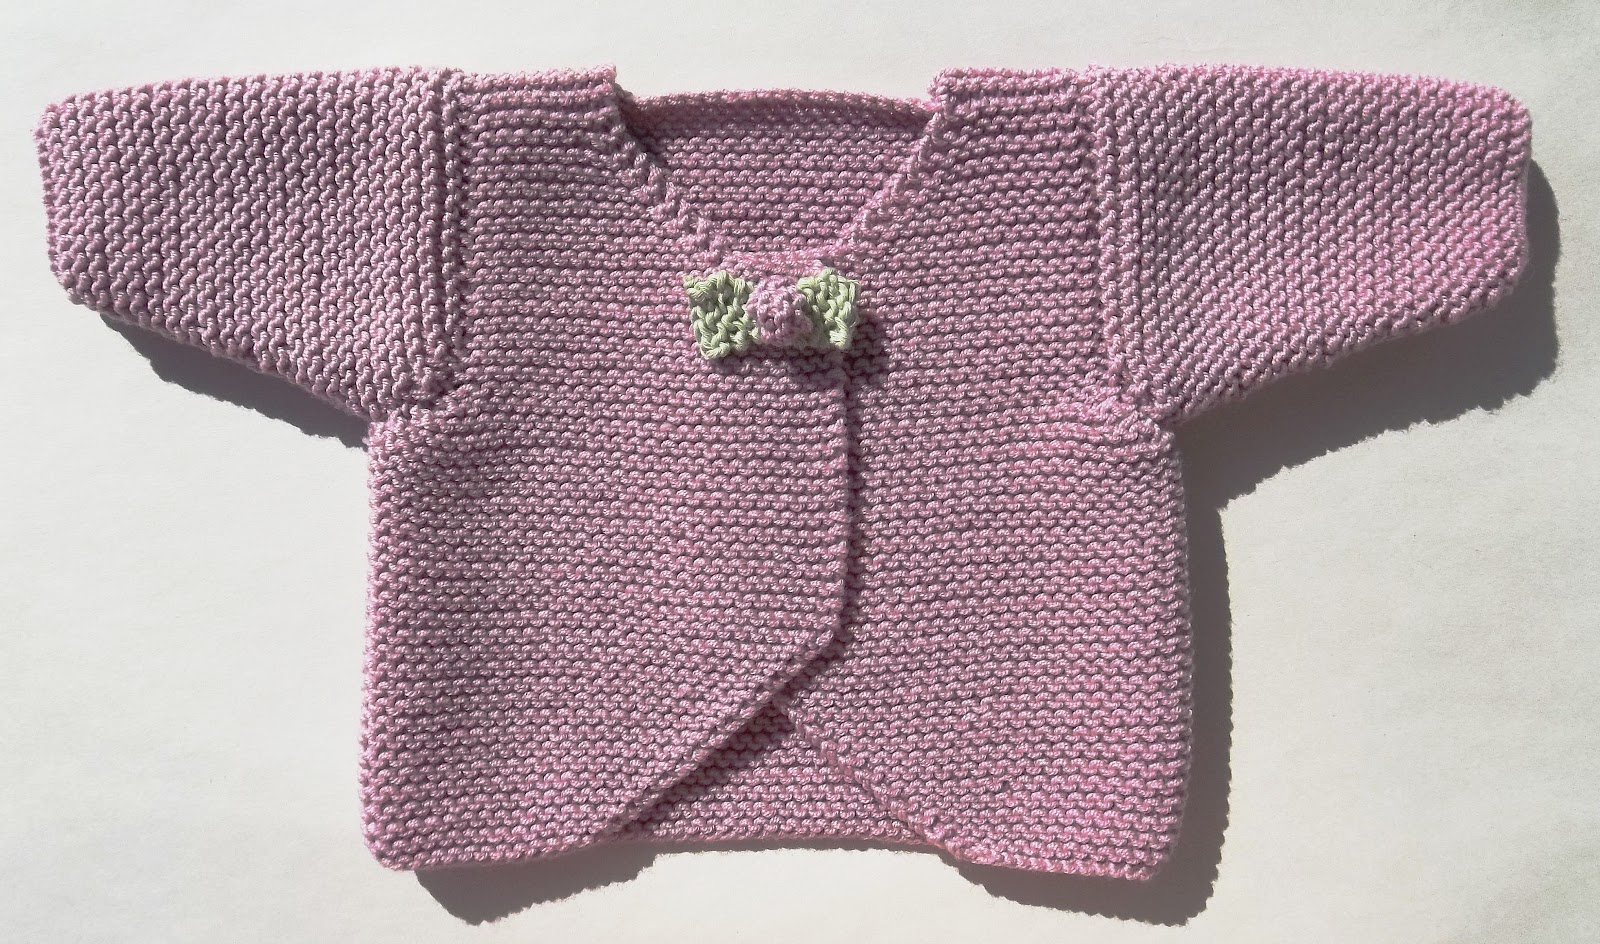 Sweater Knitting Patterns : The Design Studio: Baby Rosebud Cardigan Hand Knitting Pattern